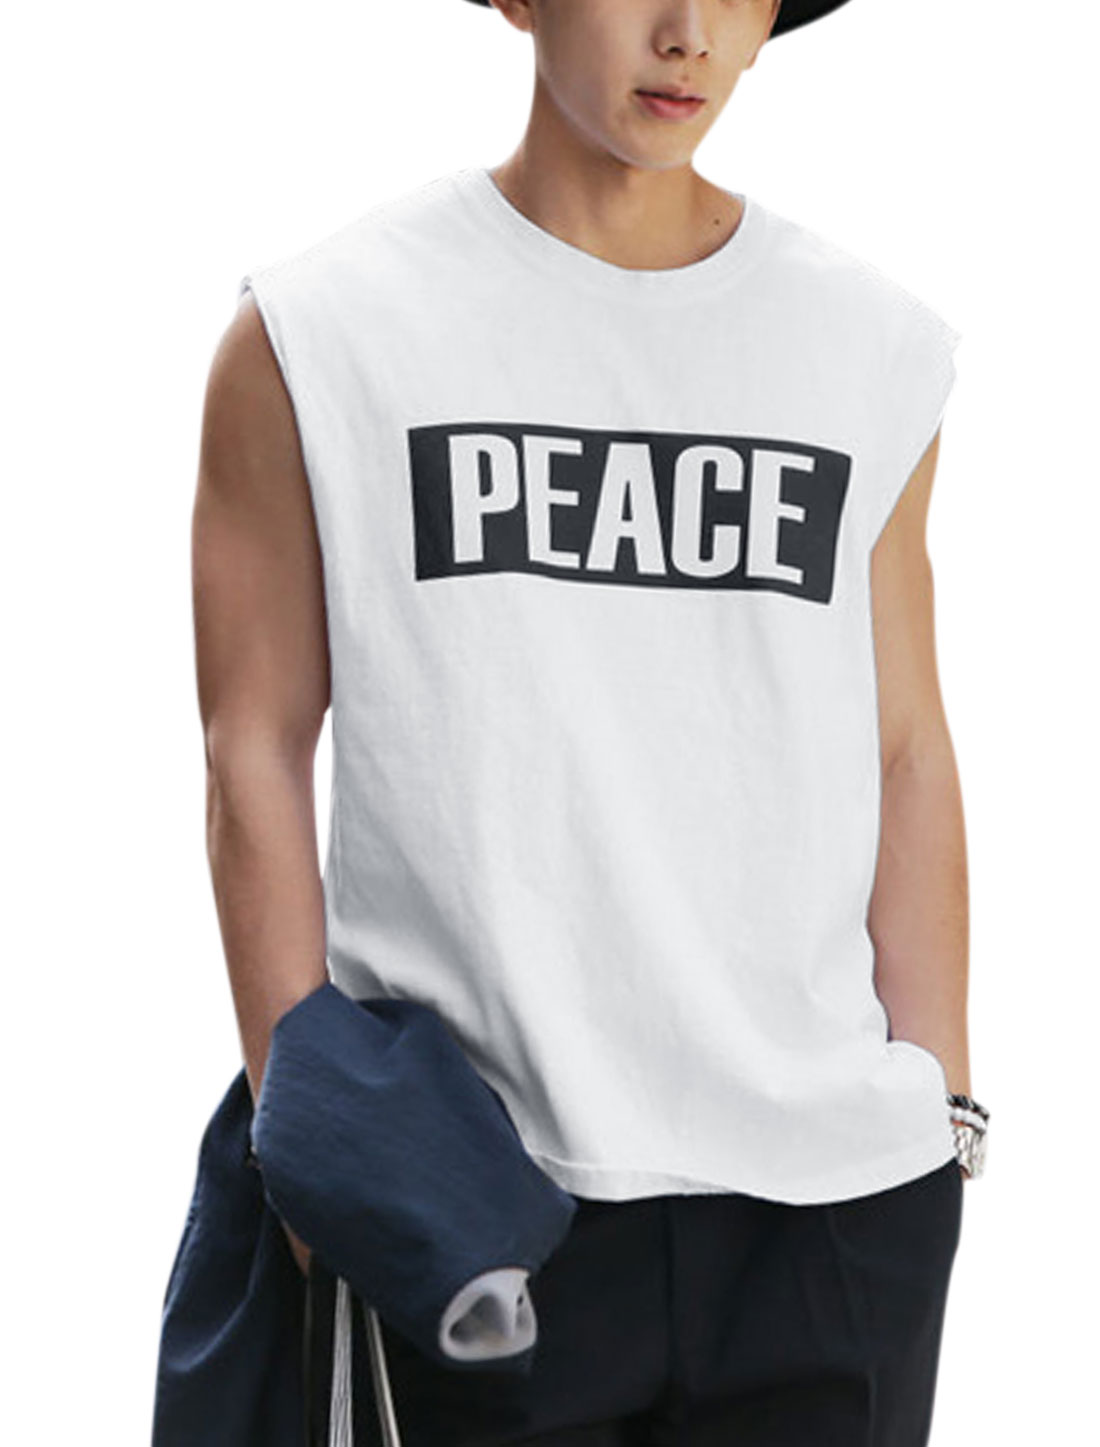 Men Letters Prints Round Neck Sleeveless Casual Tops White S